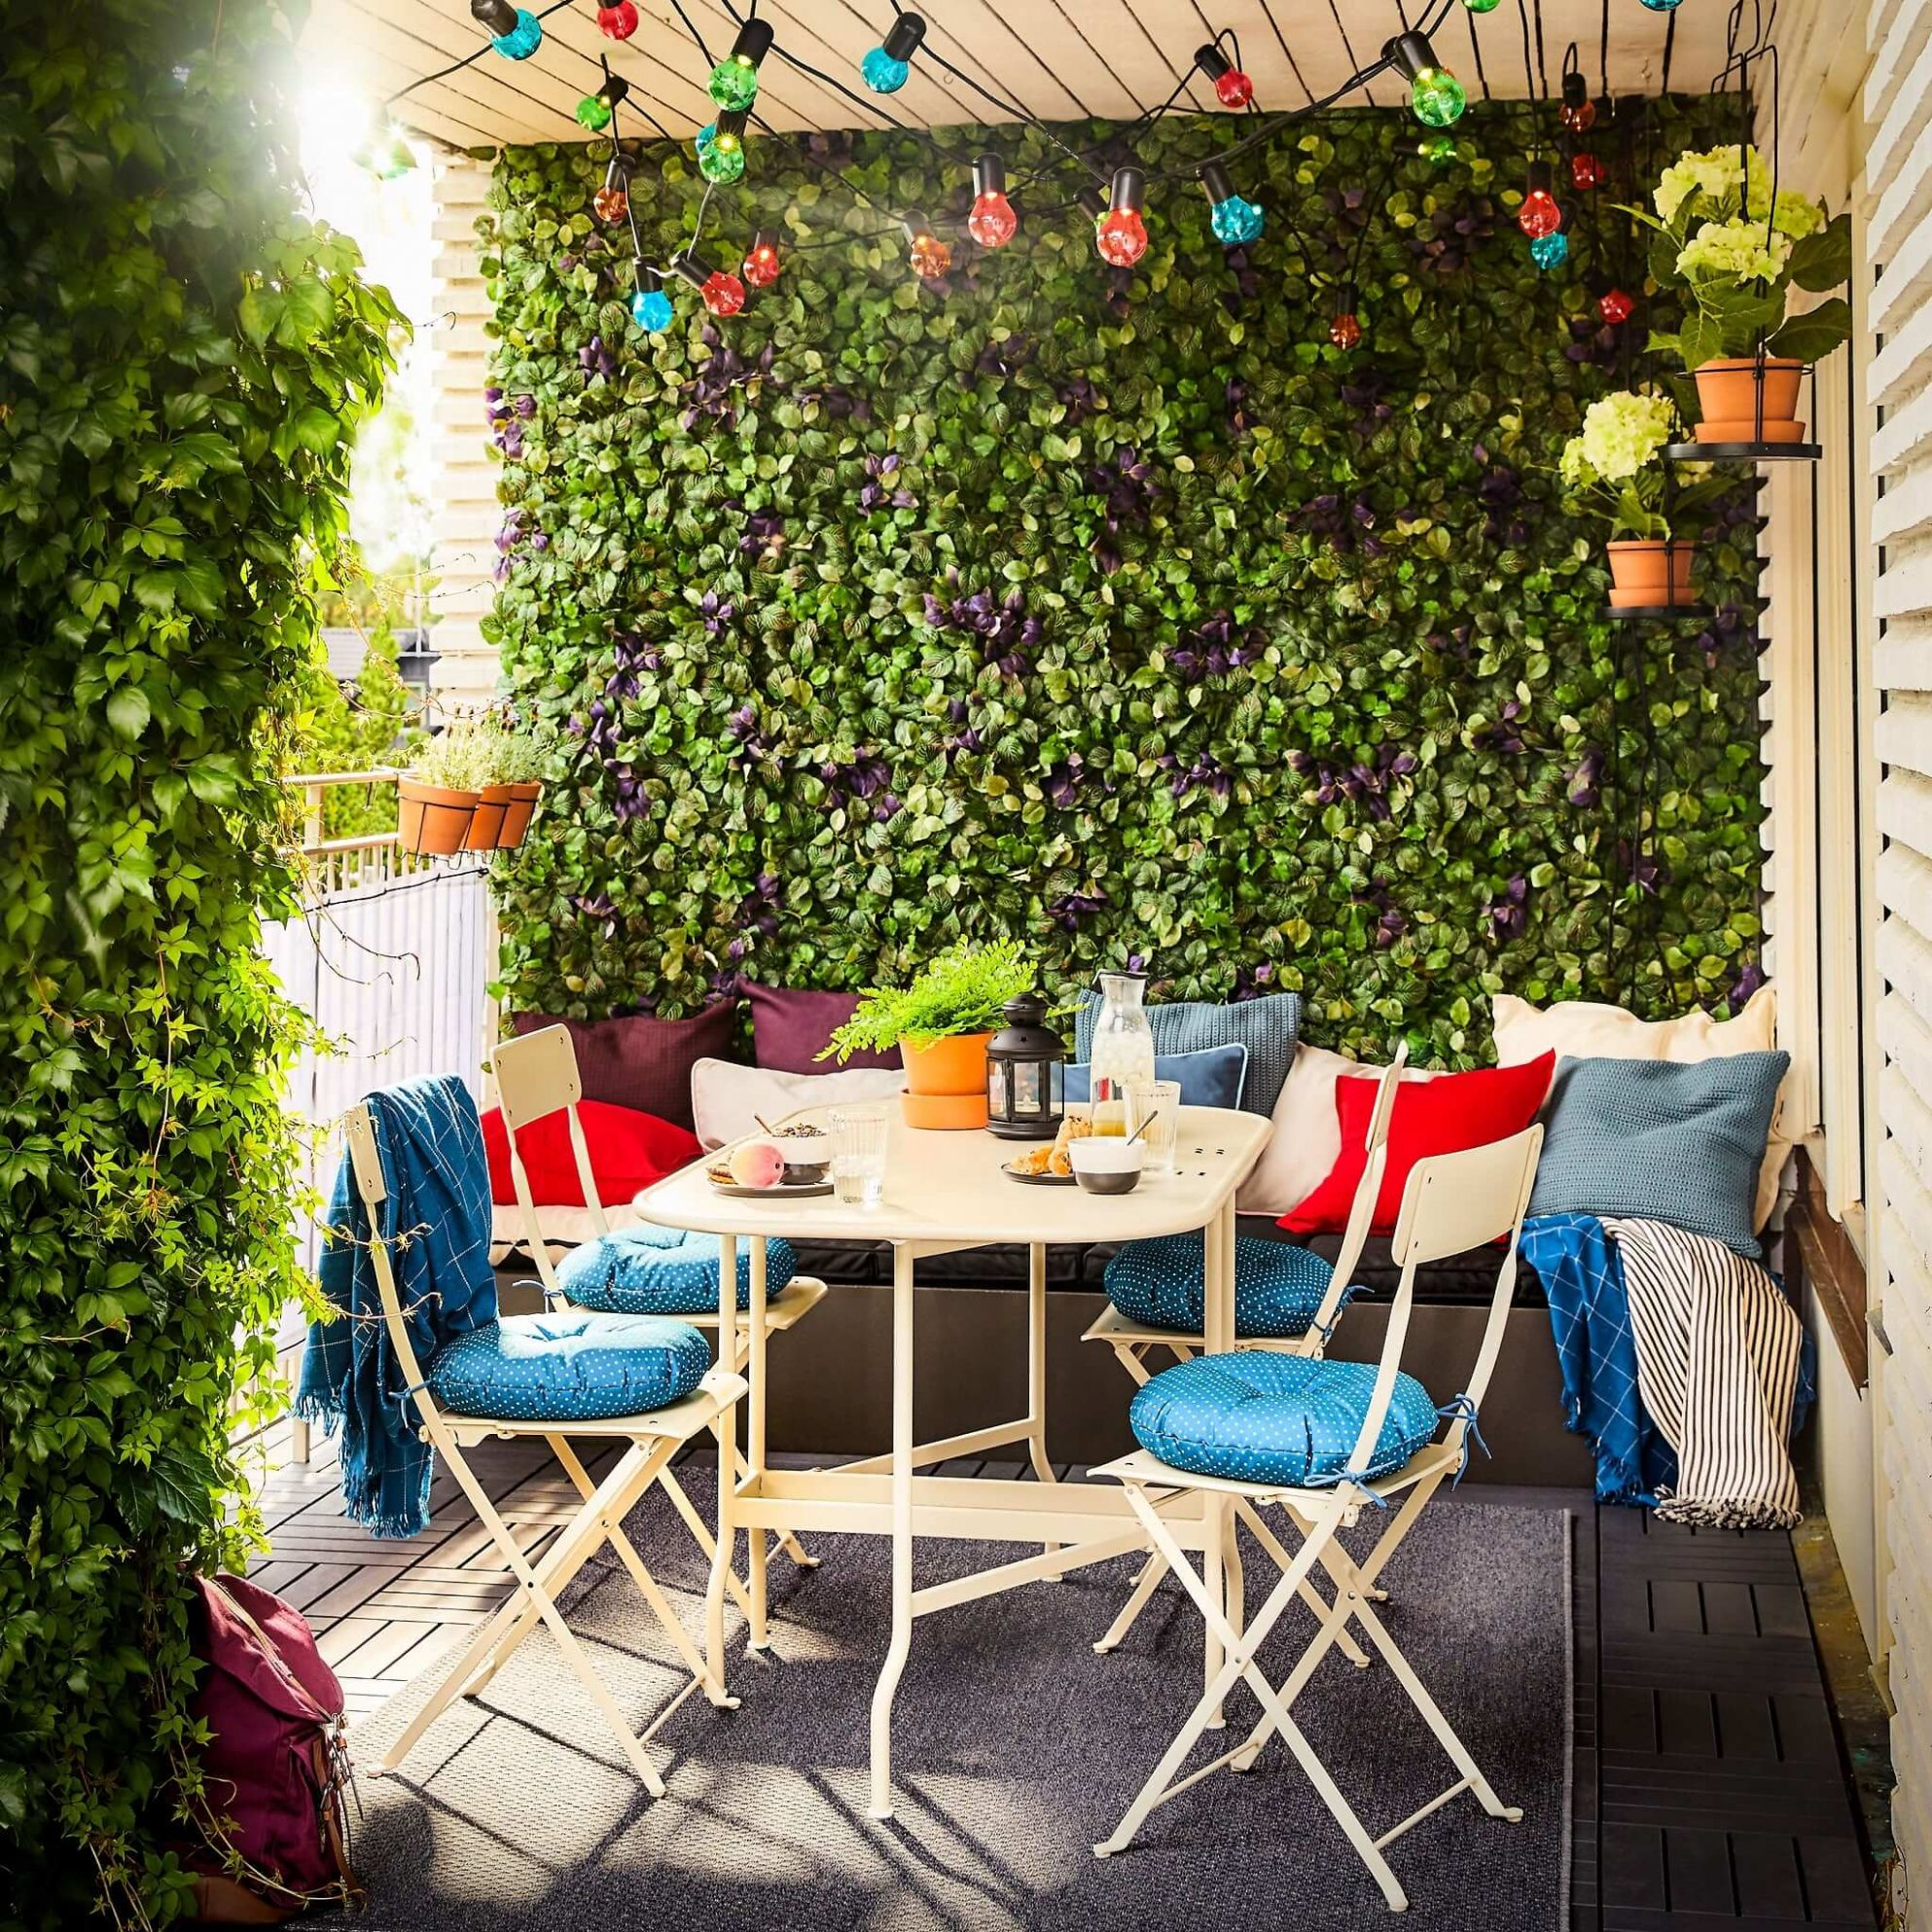 DIY Hacks to Design and Decor Balcony to Magnify Most Out of It